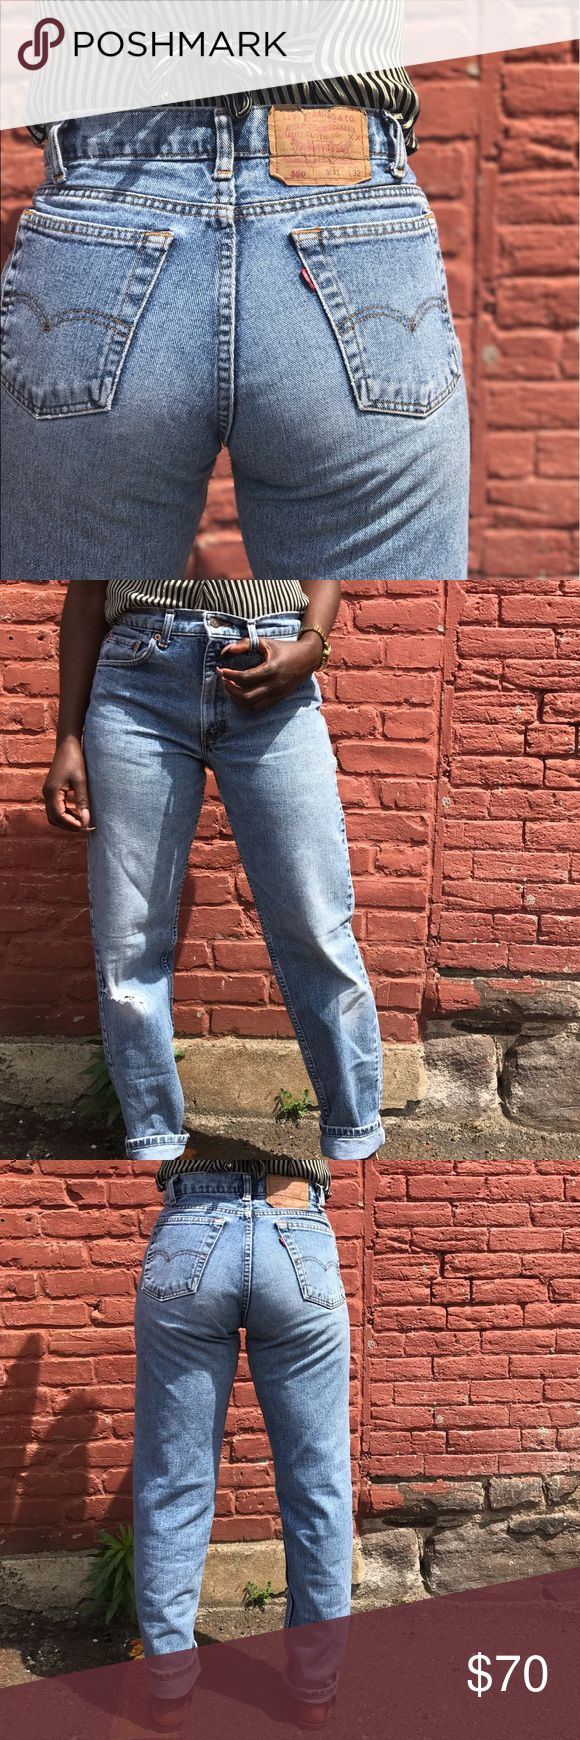 """Vintage Levi 550 Levi 550 in light/medium wash with knee distressing on the right leg. Waist measures 28/29"""" and inseam 30"""". Levi's Jeans Straight Leg"""